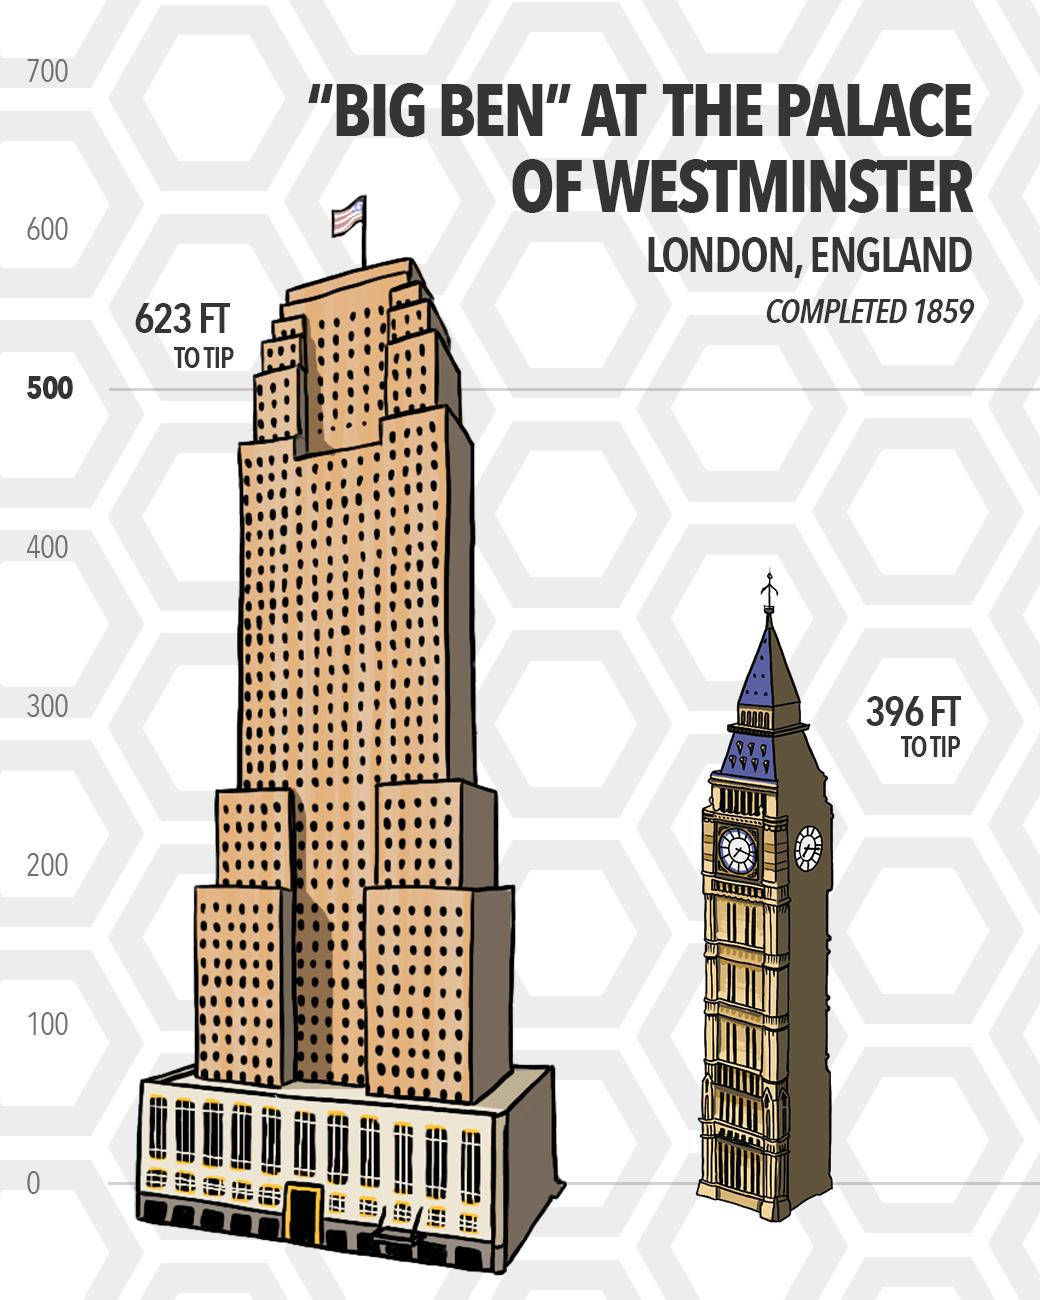 The Palace of Westminster in London, England features the iconic clock tower nicknamed Big Ben. Built over 70 years before Carew Tower, Big Ben stands 396 feet tall—a full 227 feet shorter than Cincinnati's 2nd tallest building. (Source: SkyscraperCenter.com) / Image: Phil Armstrong // Published: 5.15.19